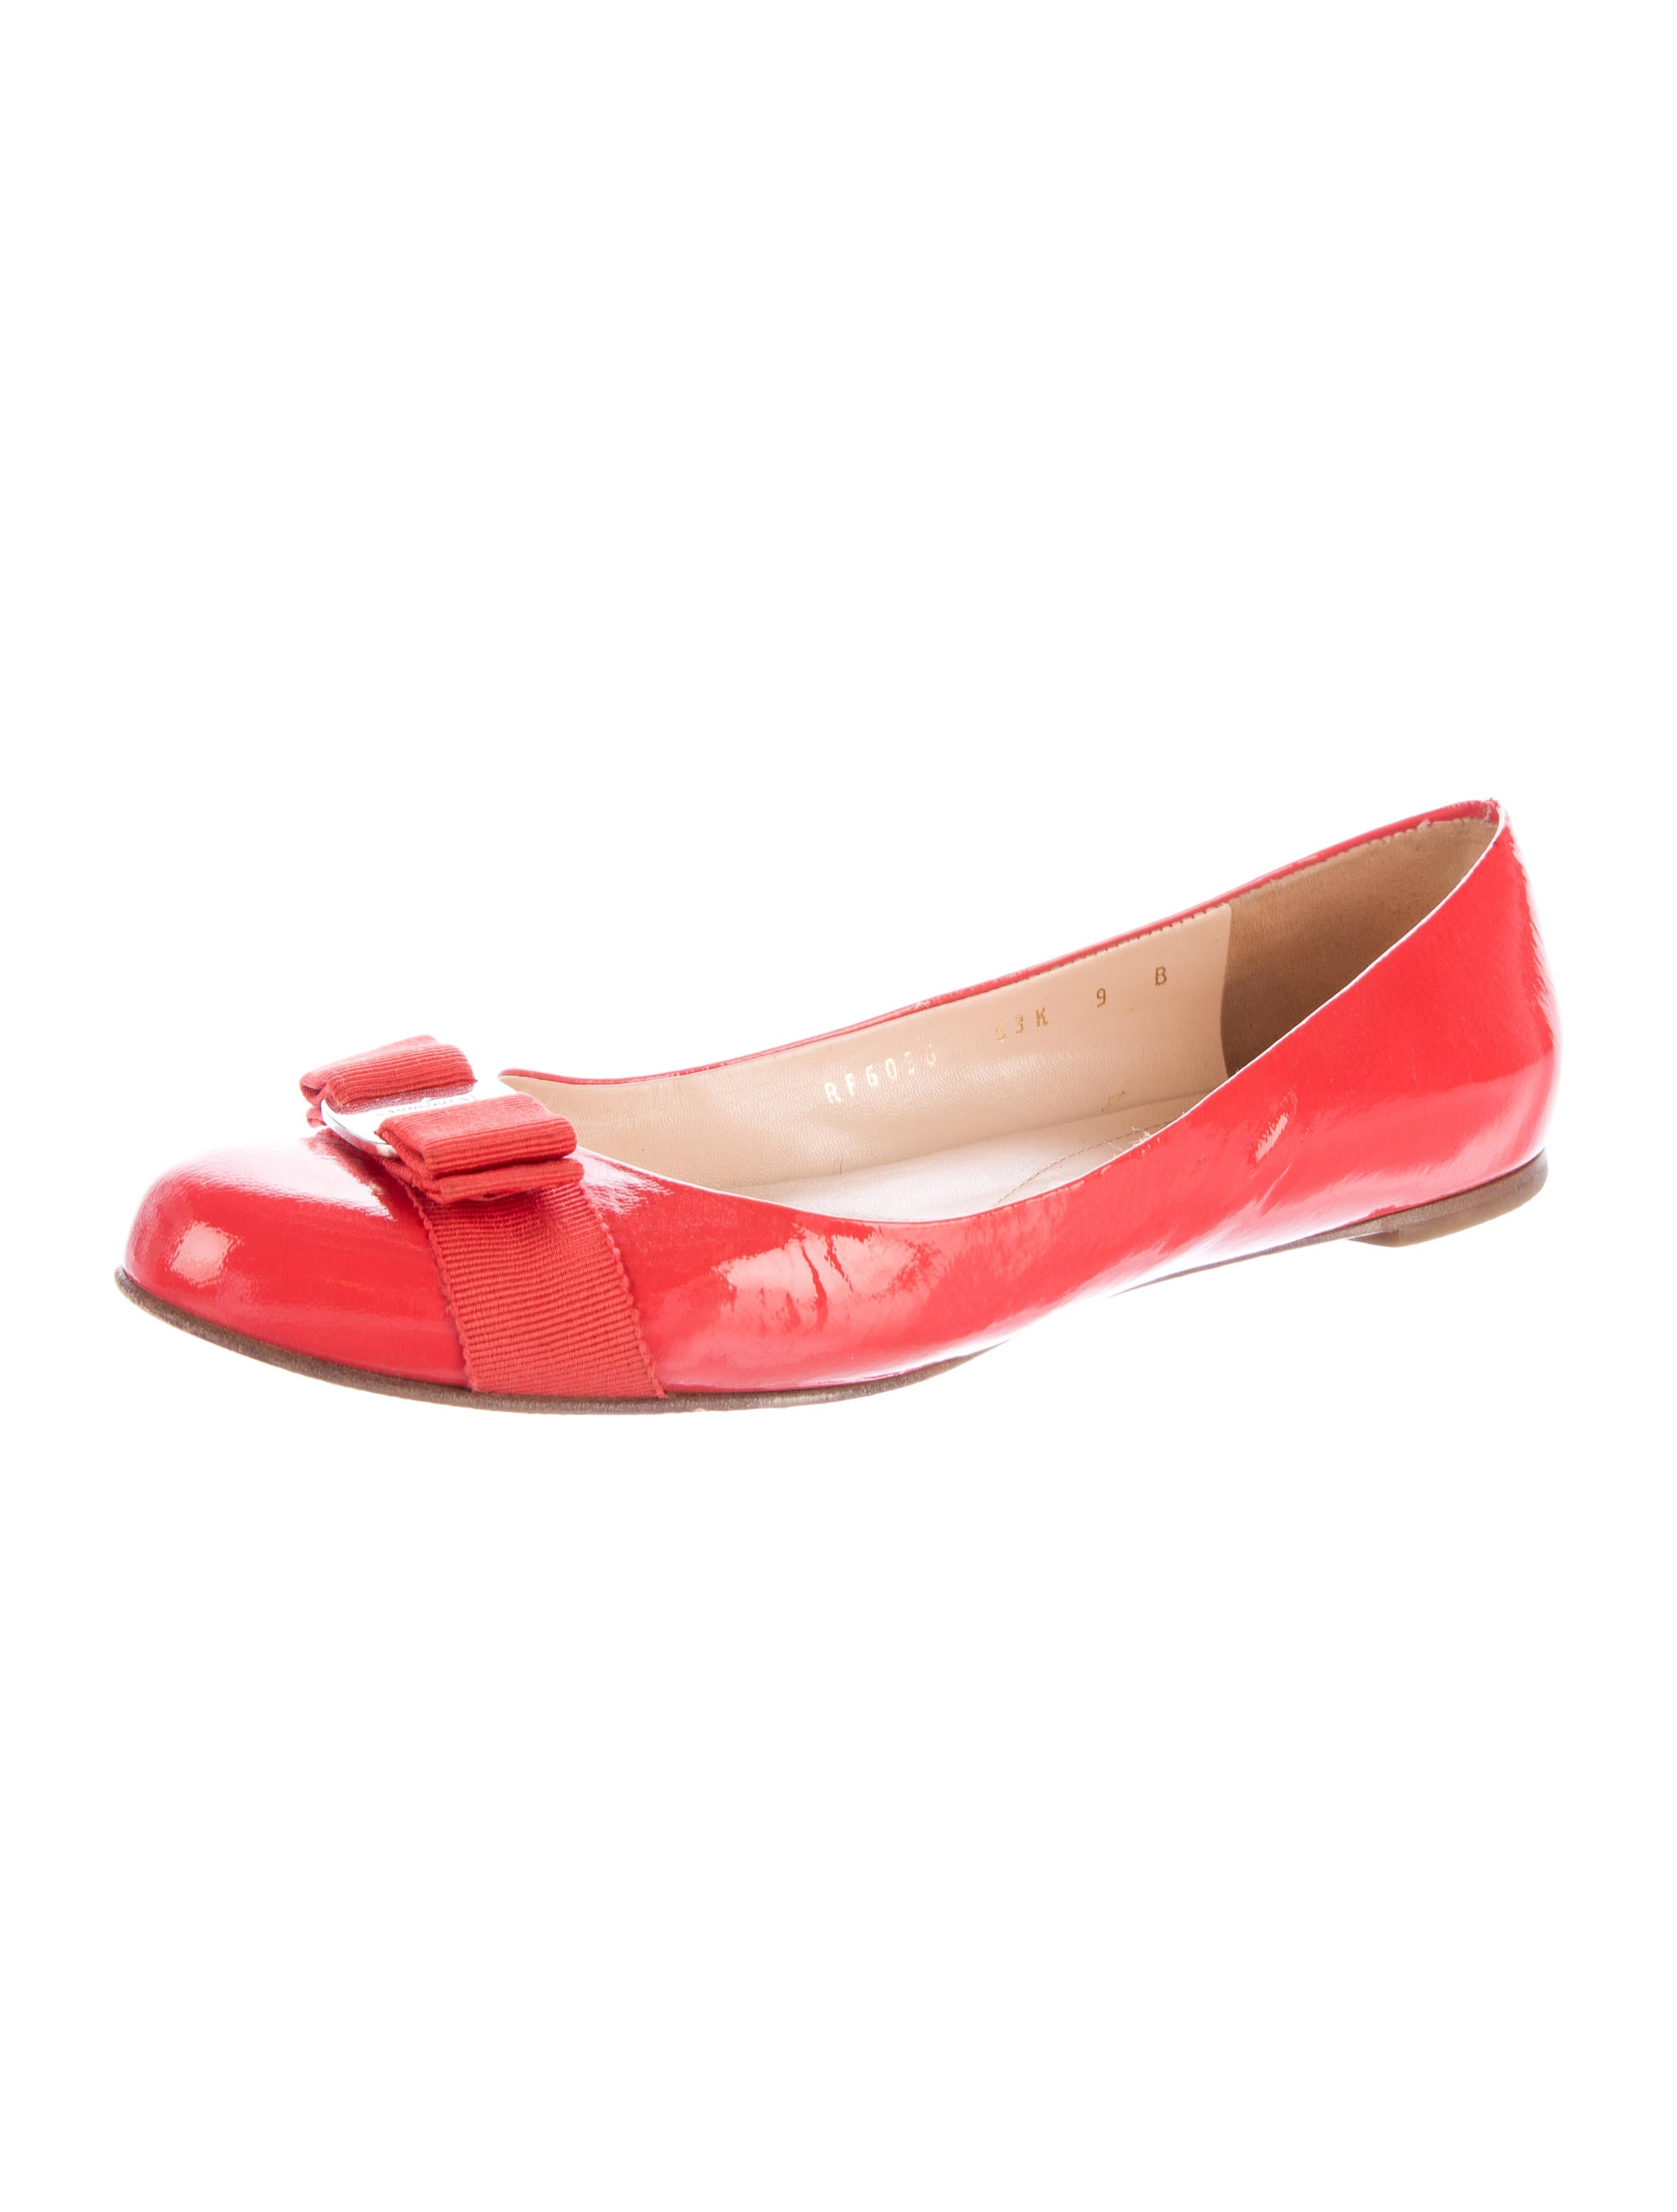 Free shipping on women's ballet flats at s2w6s5q3to.gq Shop ballet flats for women from the best brands including Tory Burch, Sam Edelman, Valentino and more. Totally free shipping & returns.